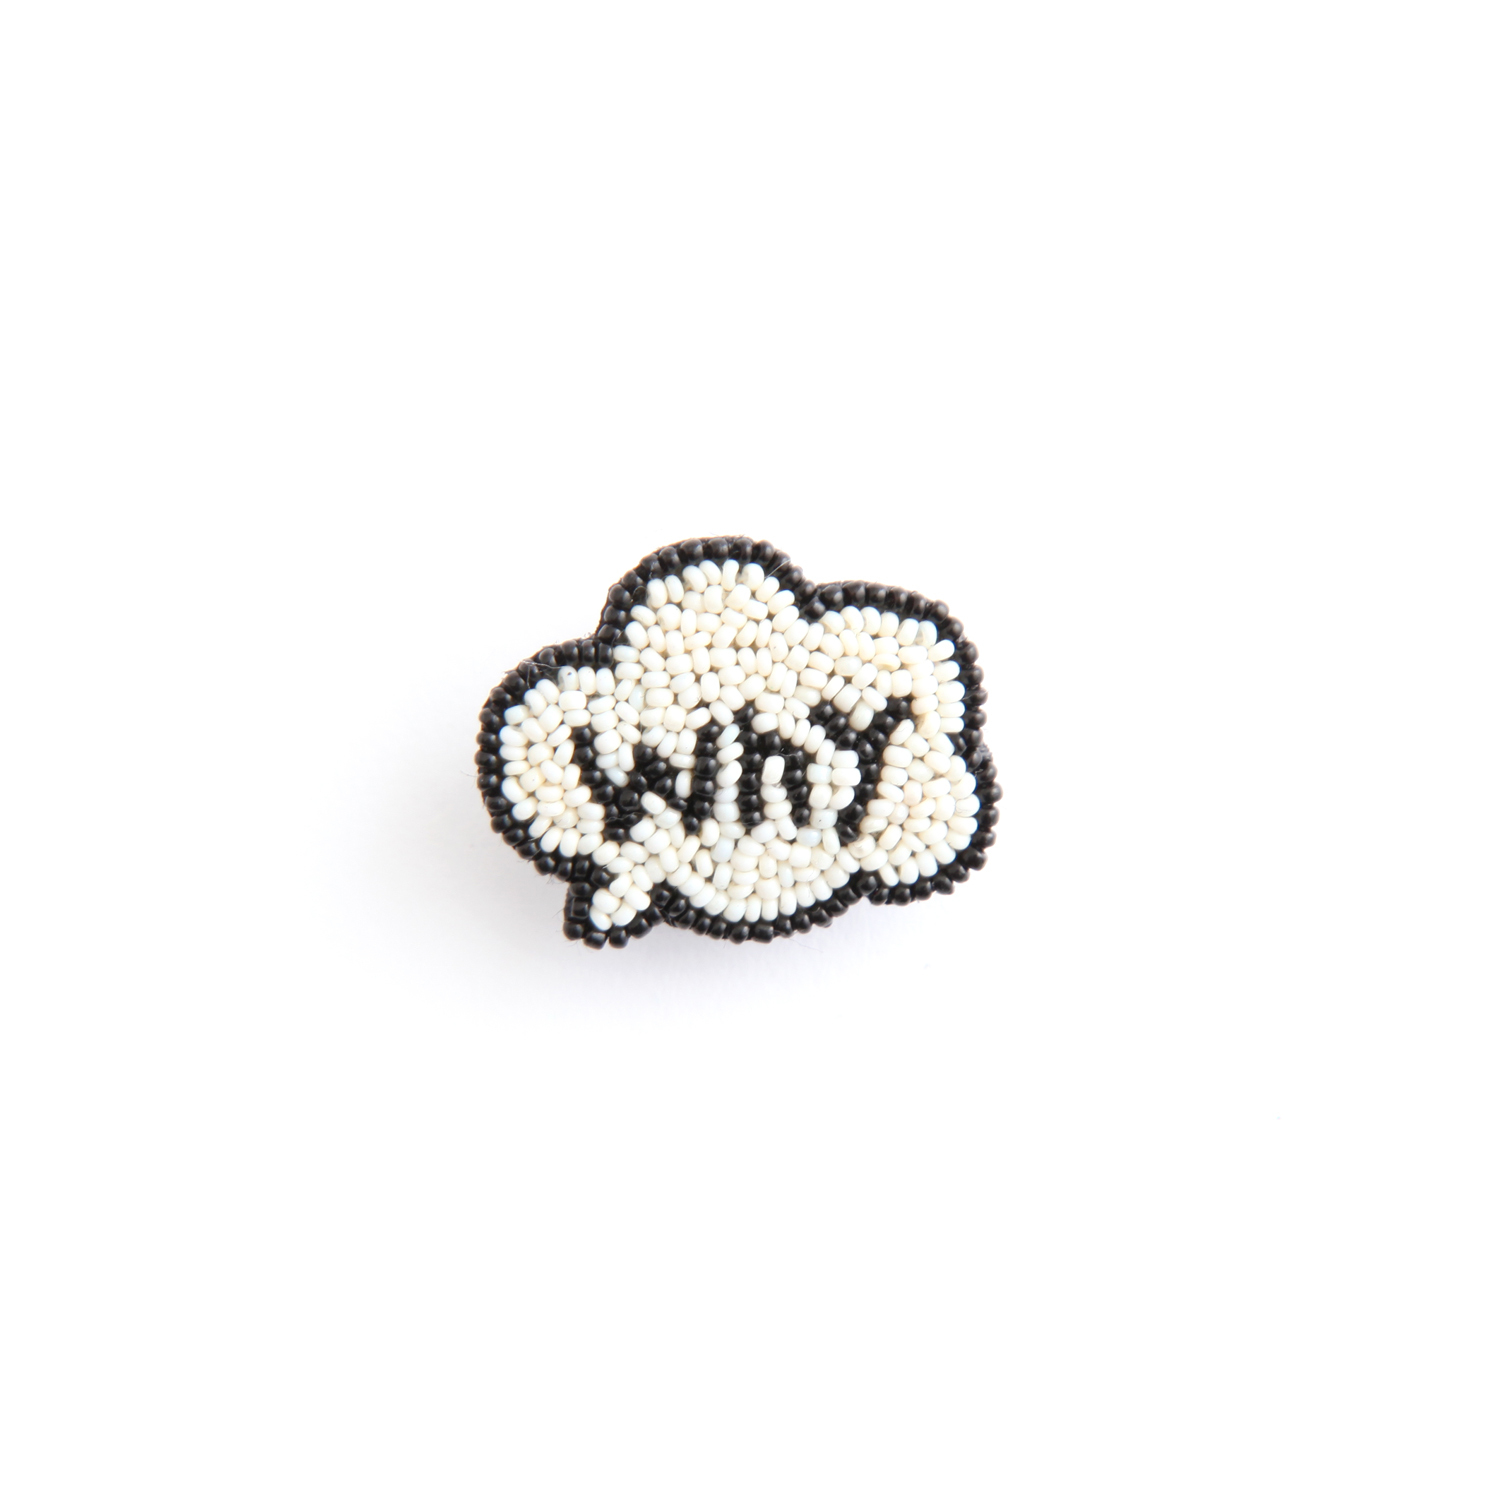 Môko Kobayashi/Why pin